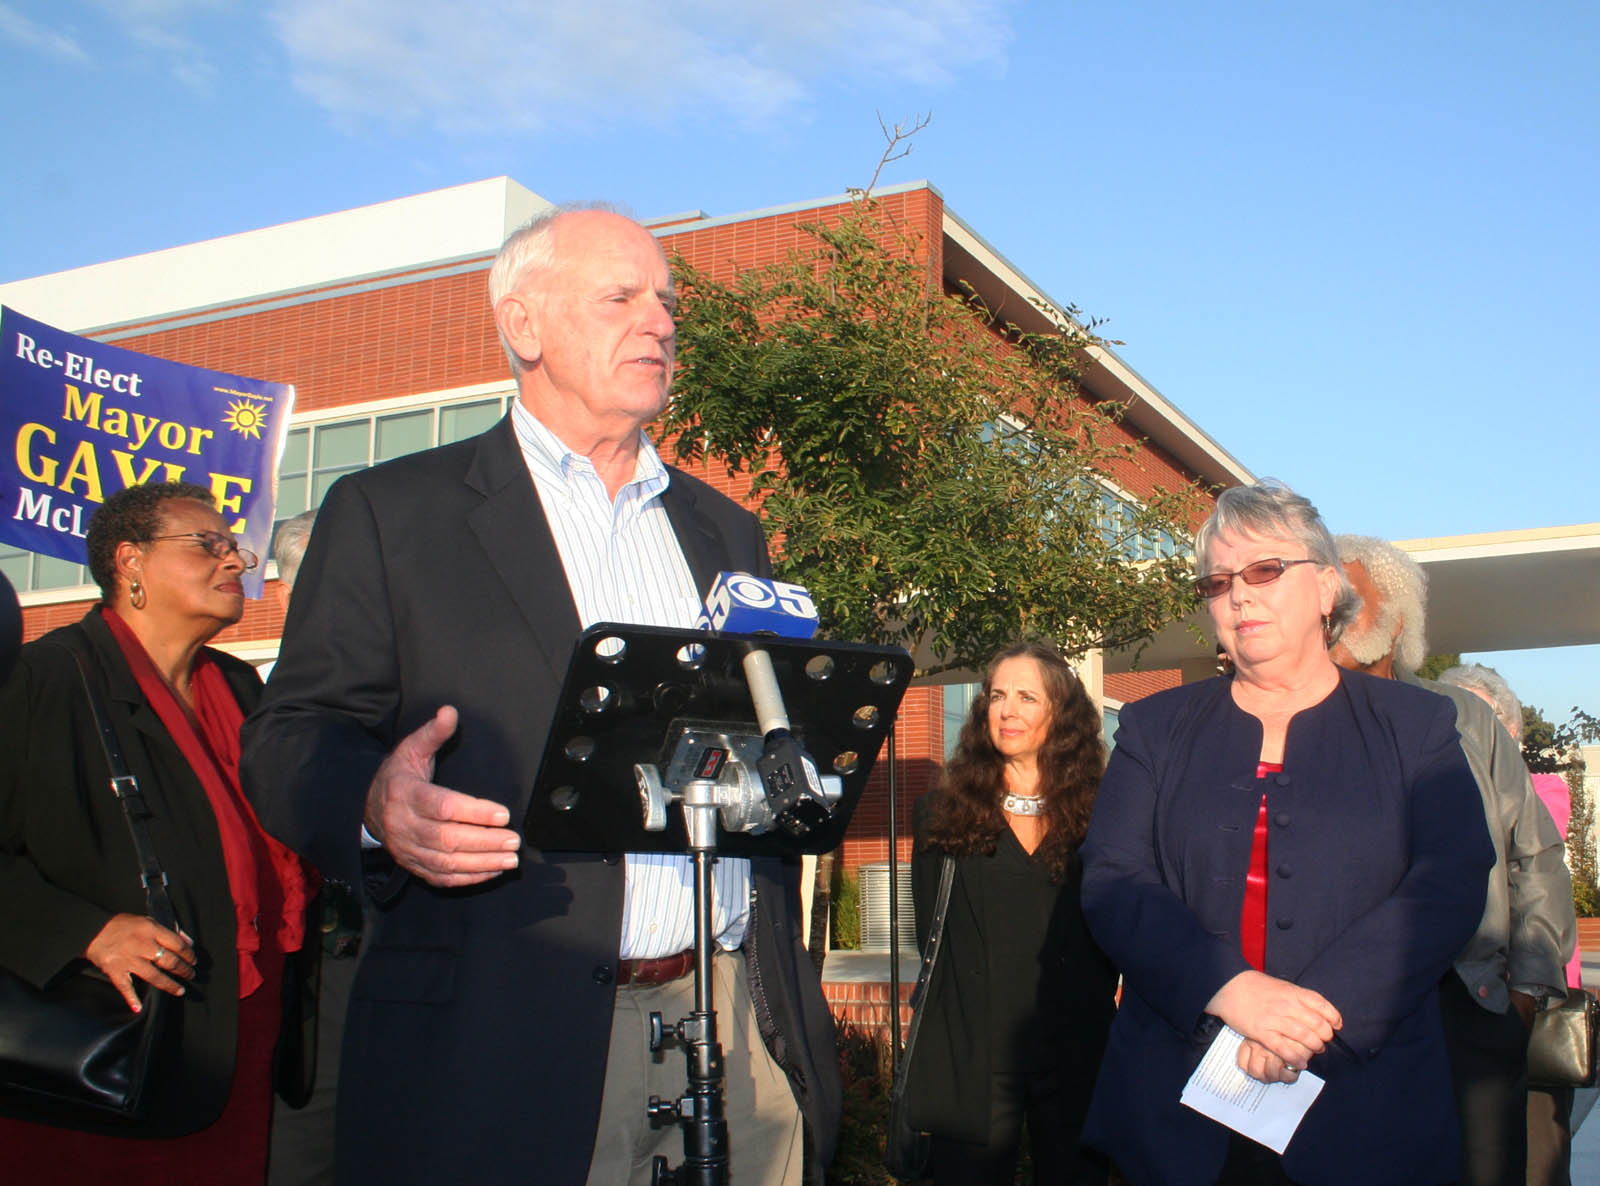 Councilmember Tom Butt spoke on behalf of the mayor, saying the move was a return to dirty politics.